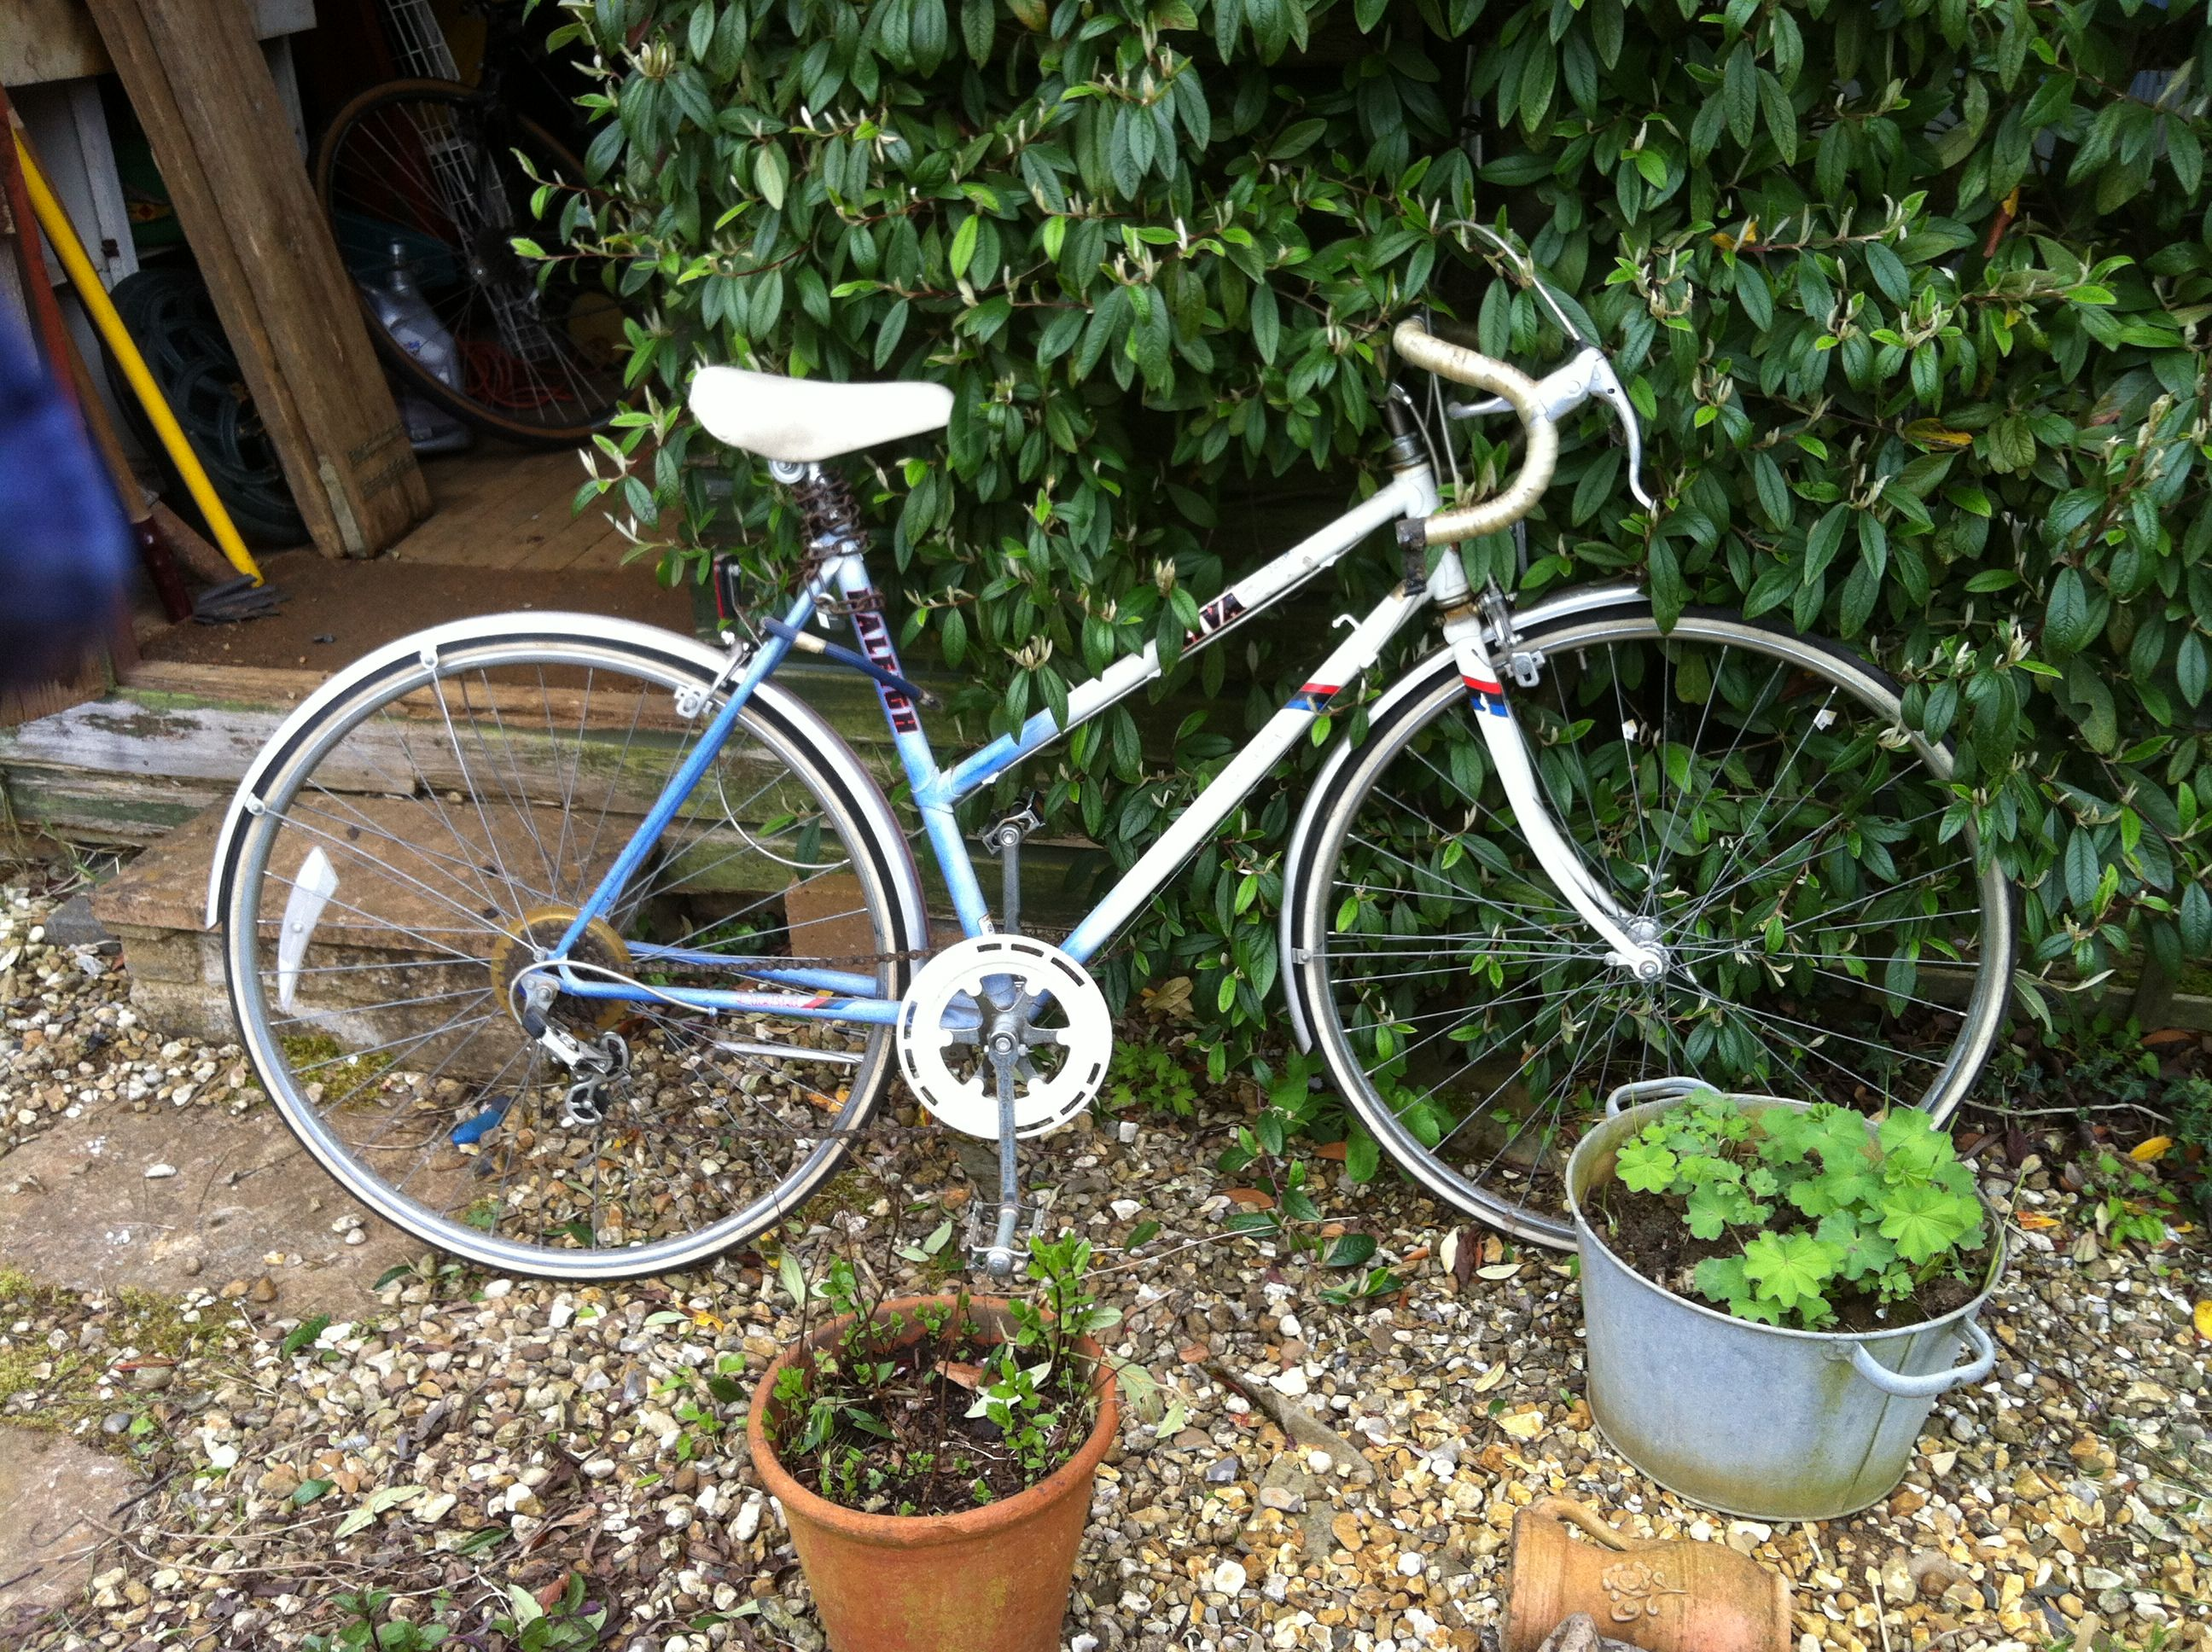 New bike I acquired today for free! It's a Raleigh Riva and from research I quickly undertook, it's probably not far off being as old as I am. Husband reckons it should scrub up alright.